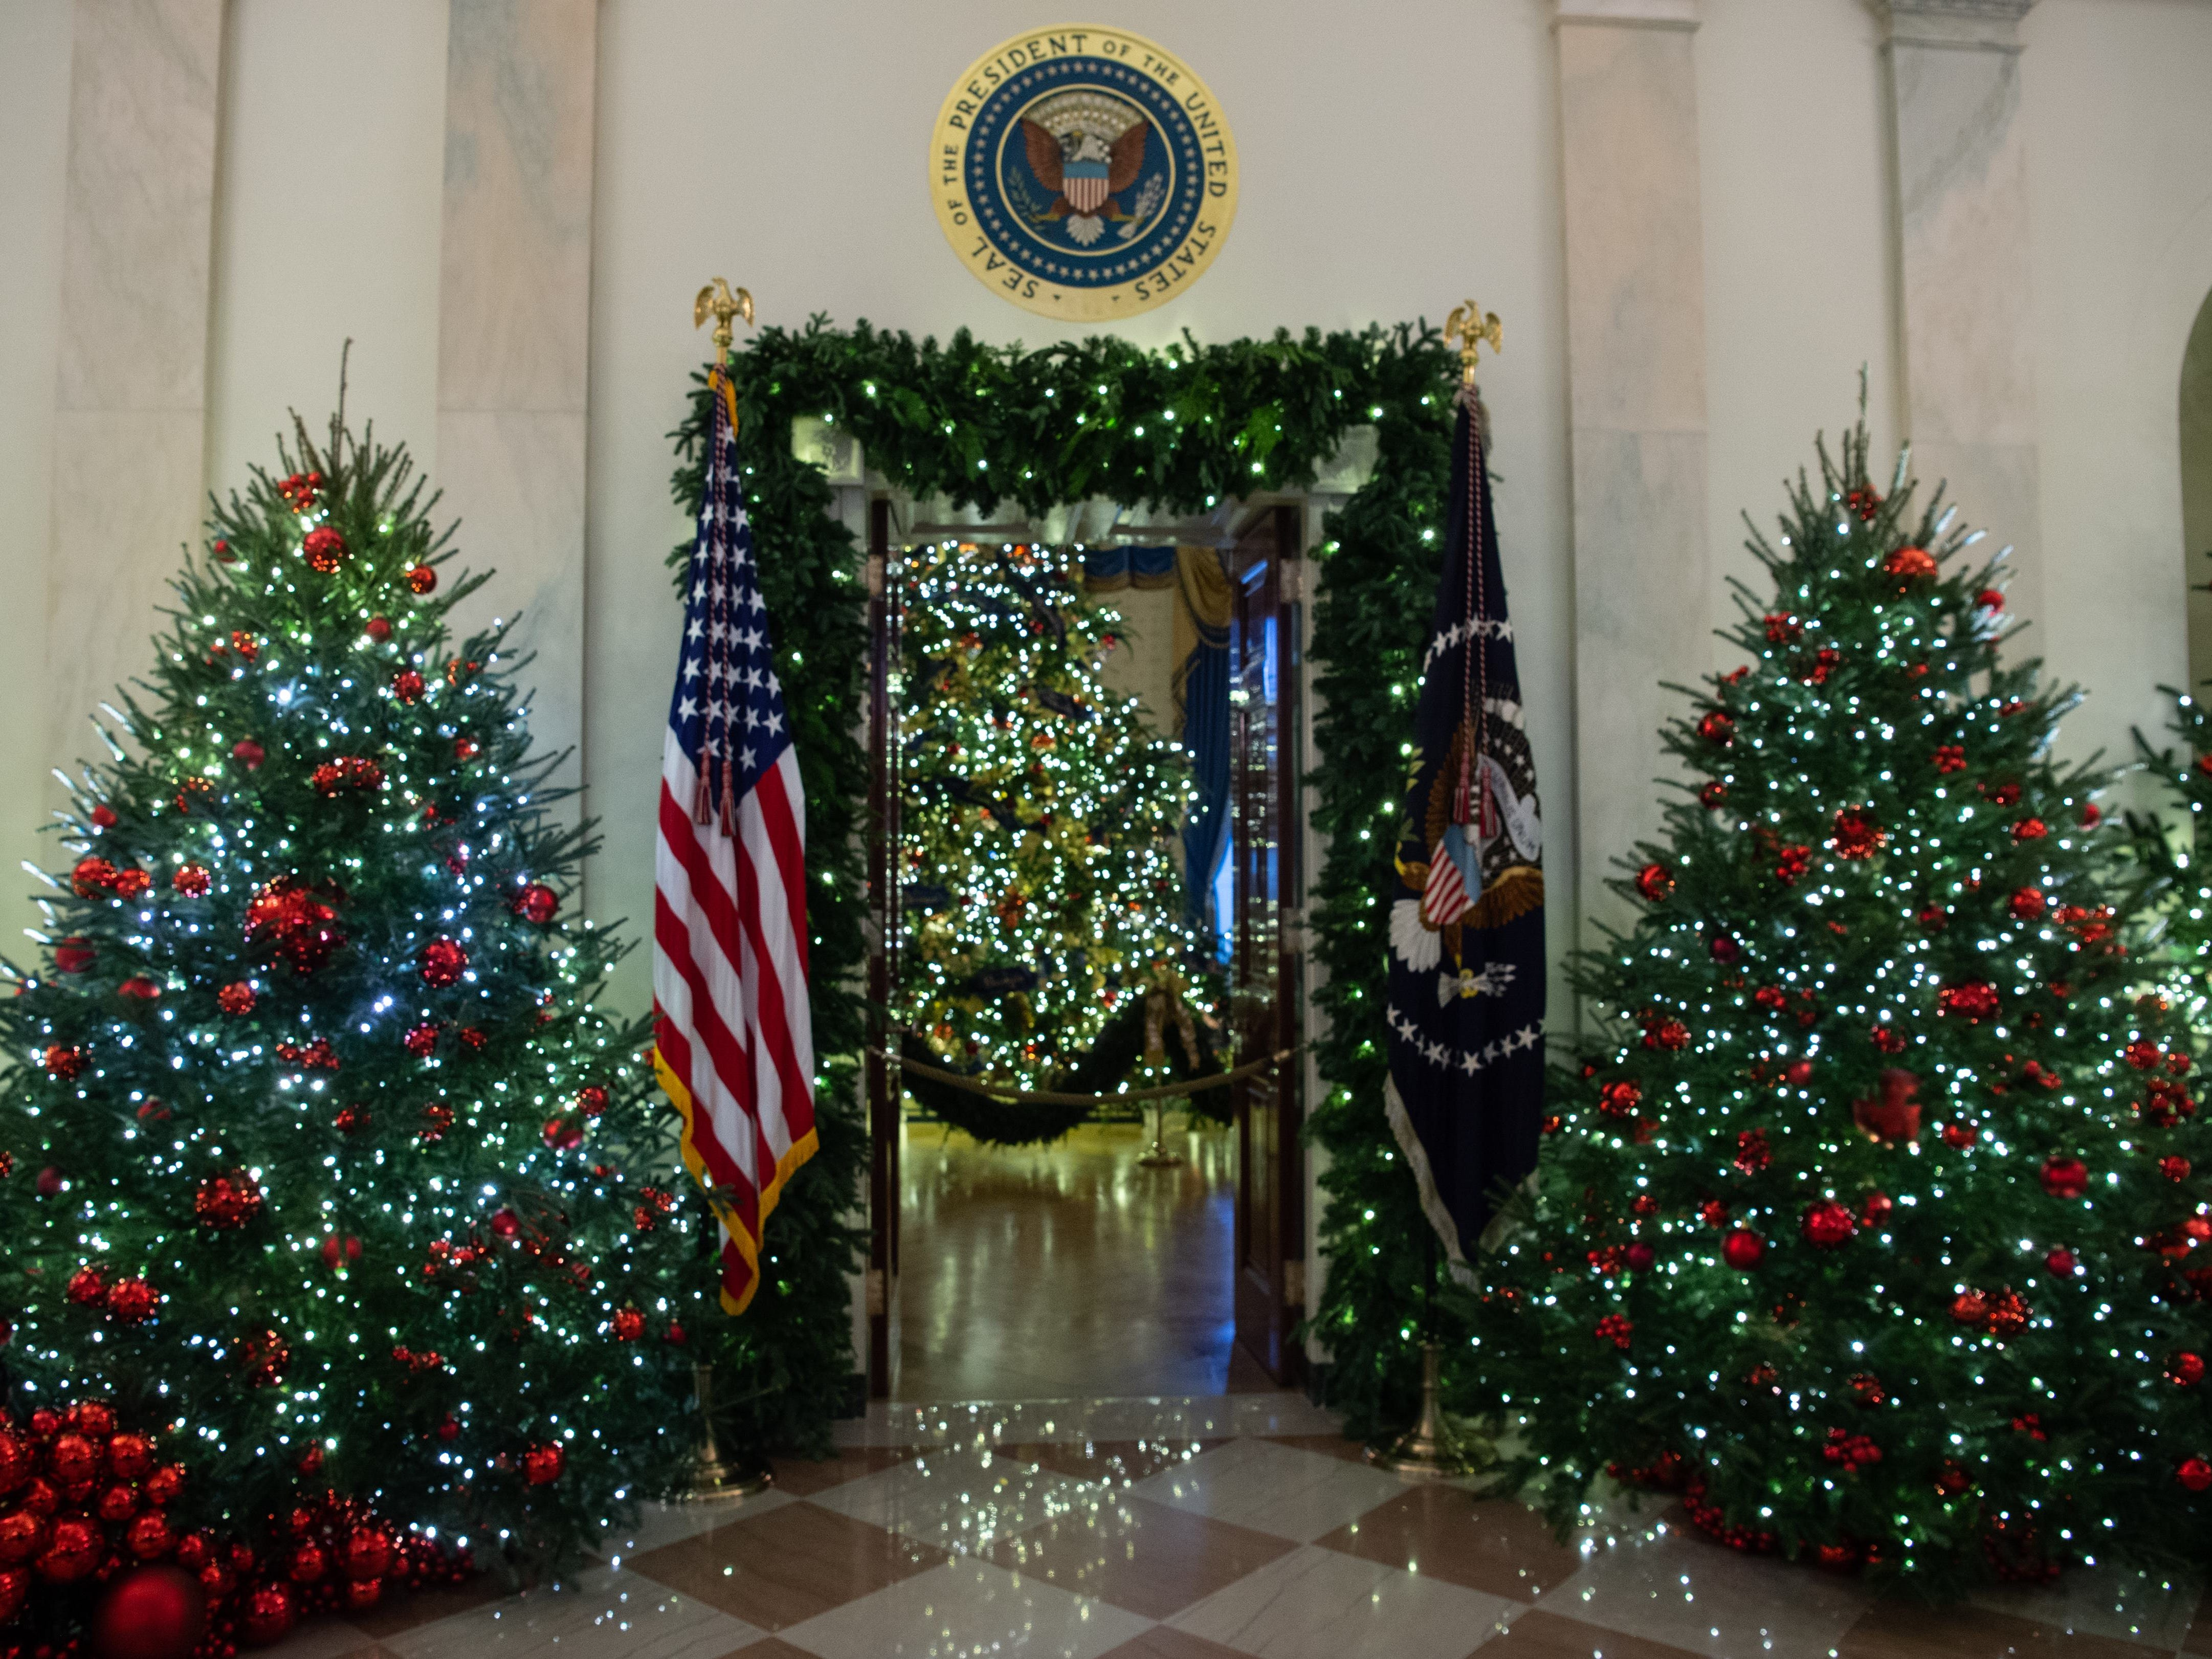 Christmas decorations are seen at the White House during a preview of the 2018 holiday decor in Washington, DC, on November 26, 2018.